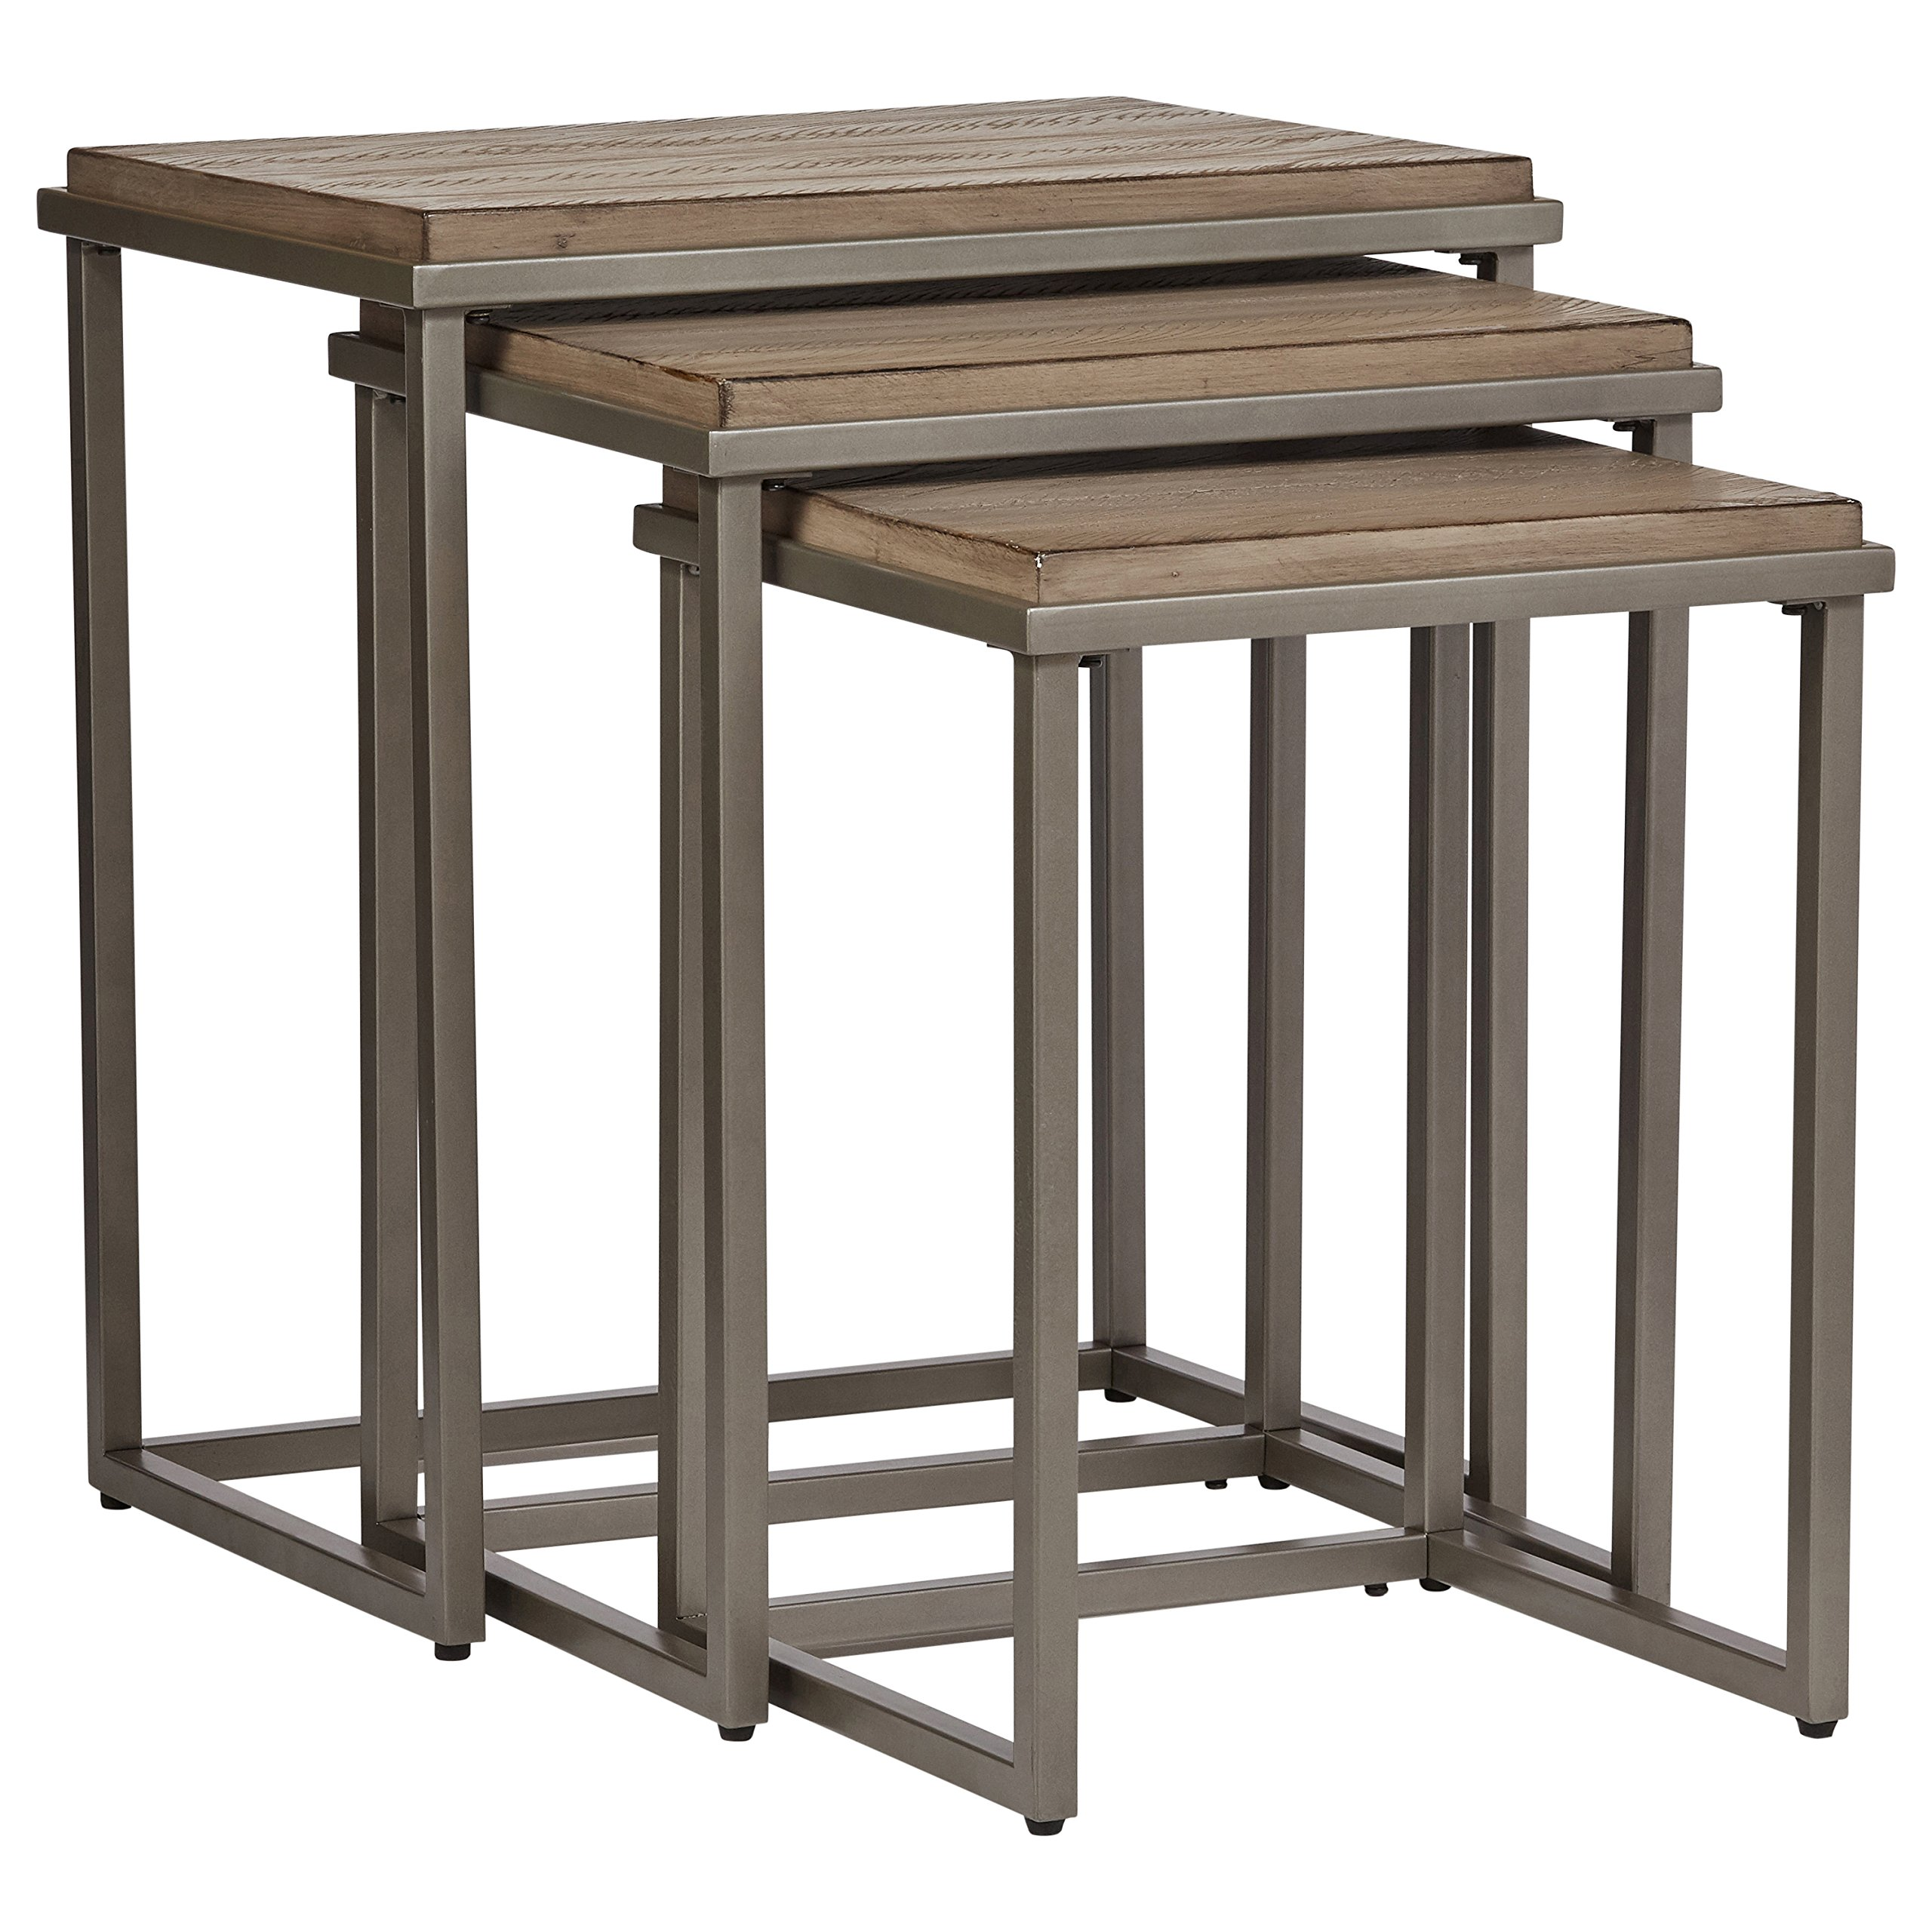 Stone & Beam Gazelle Rustic Metal Nesting Side End Tables, 22''W, Set of 3, Weathered Taupe Gray by Stone & Beam